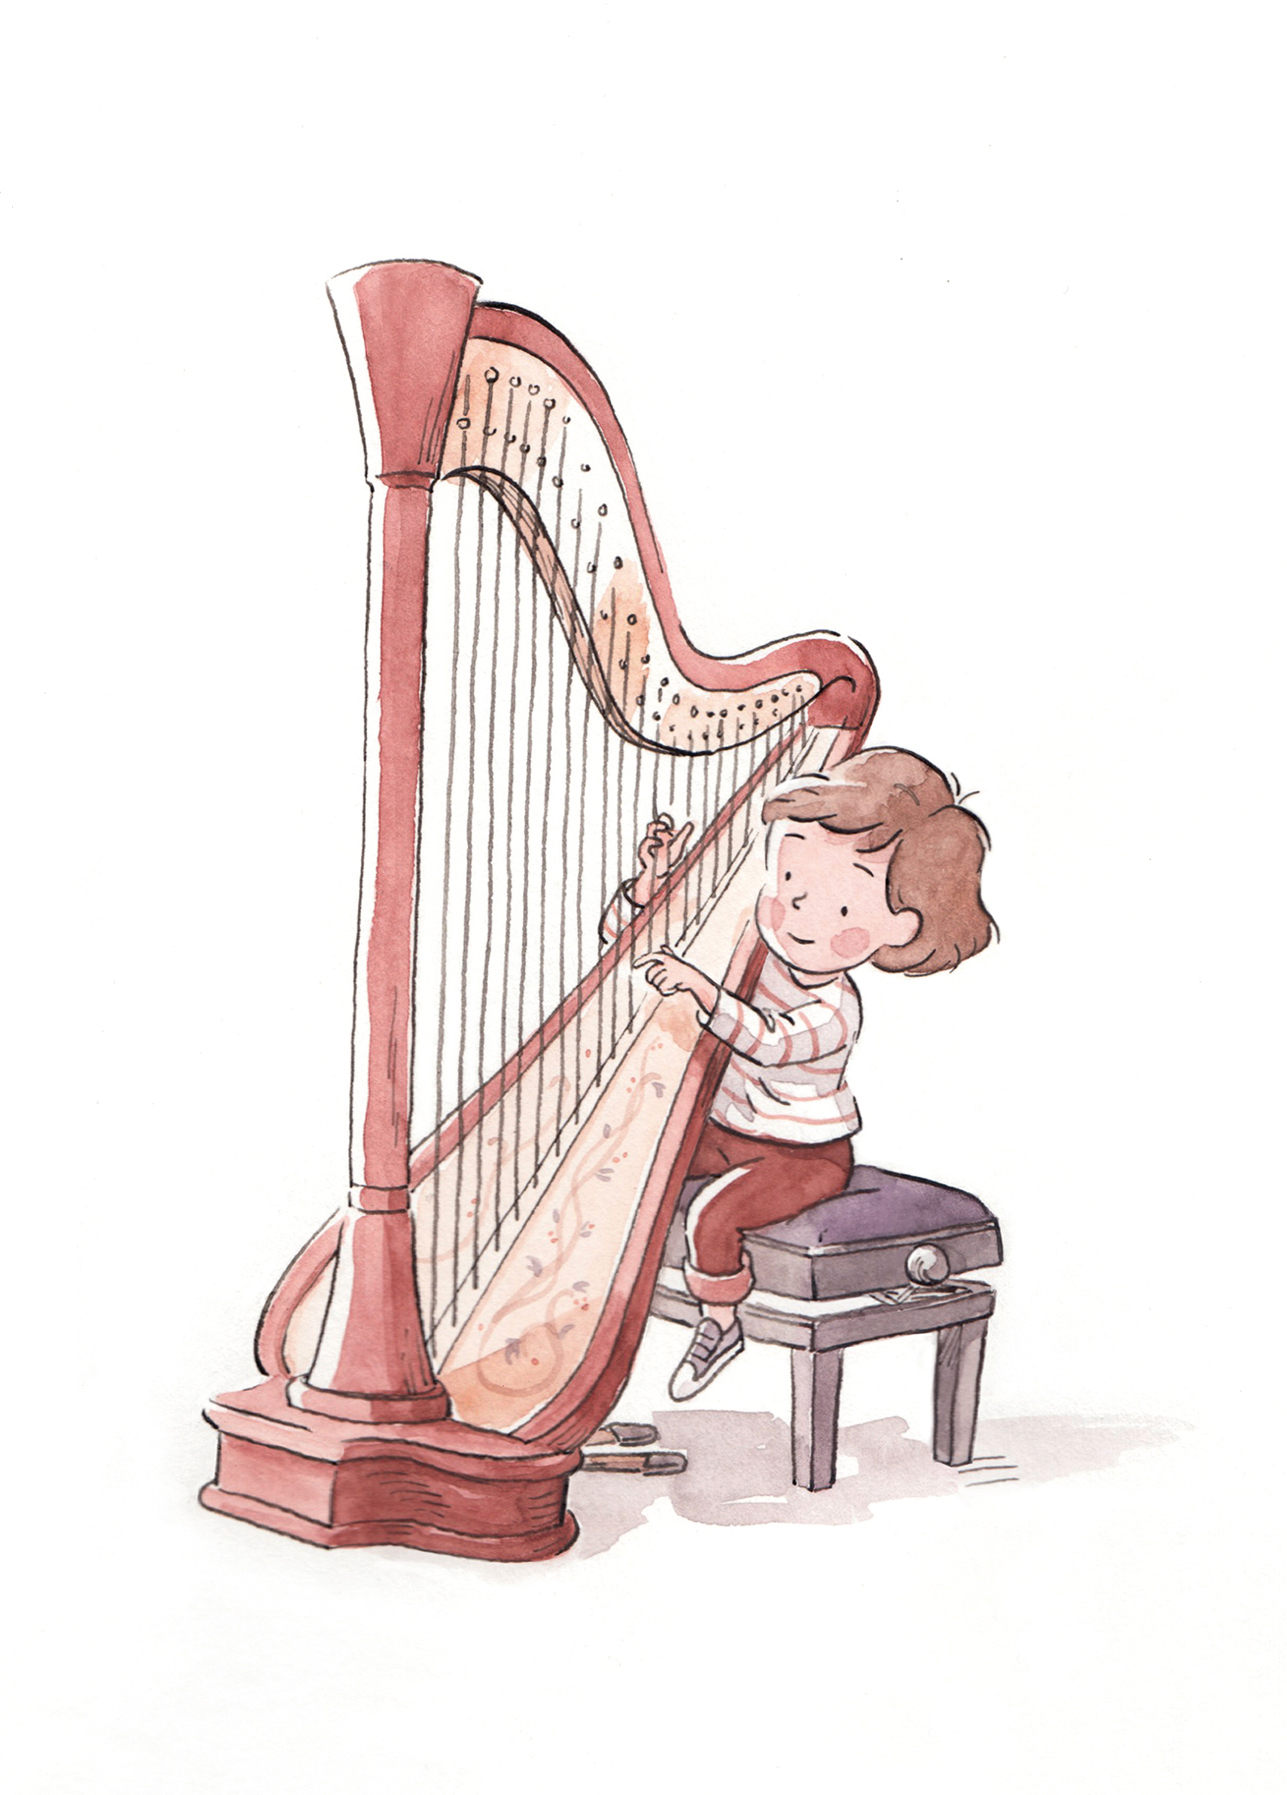 Playing the harp.